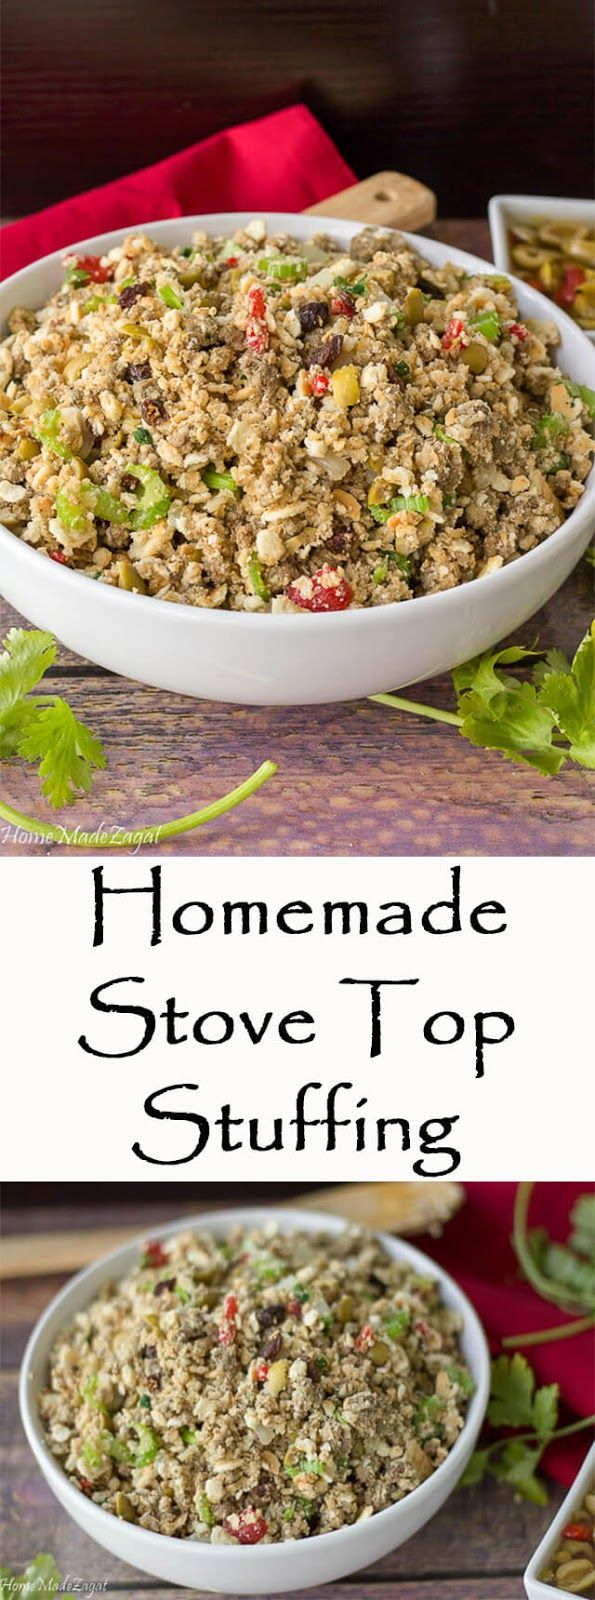 Easy stove top stuffing chicken breast recipes - Food tour recipes